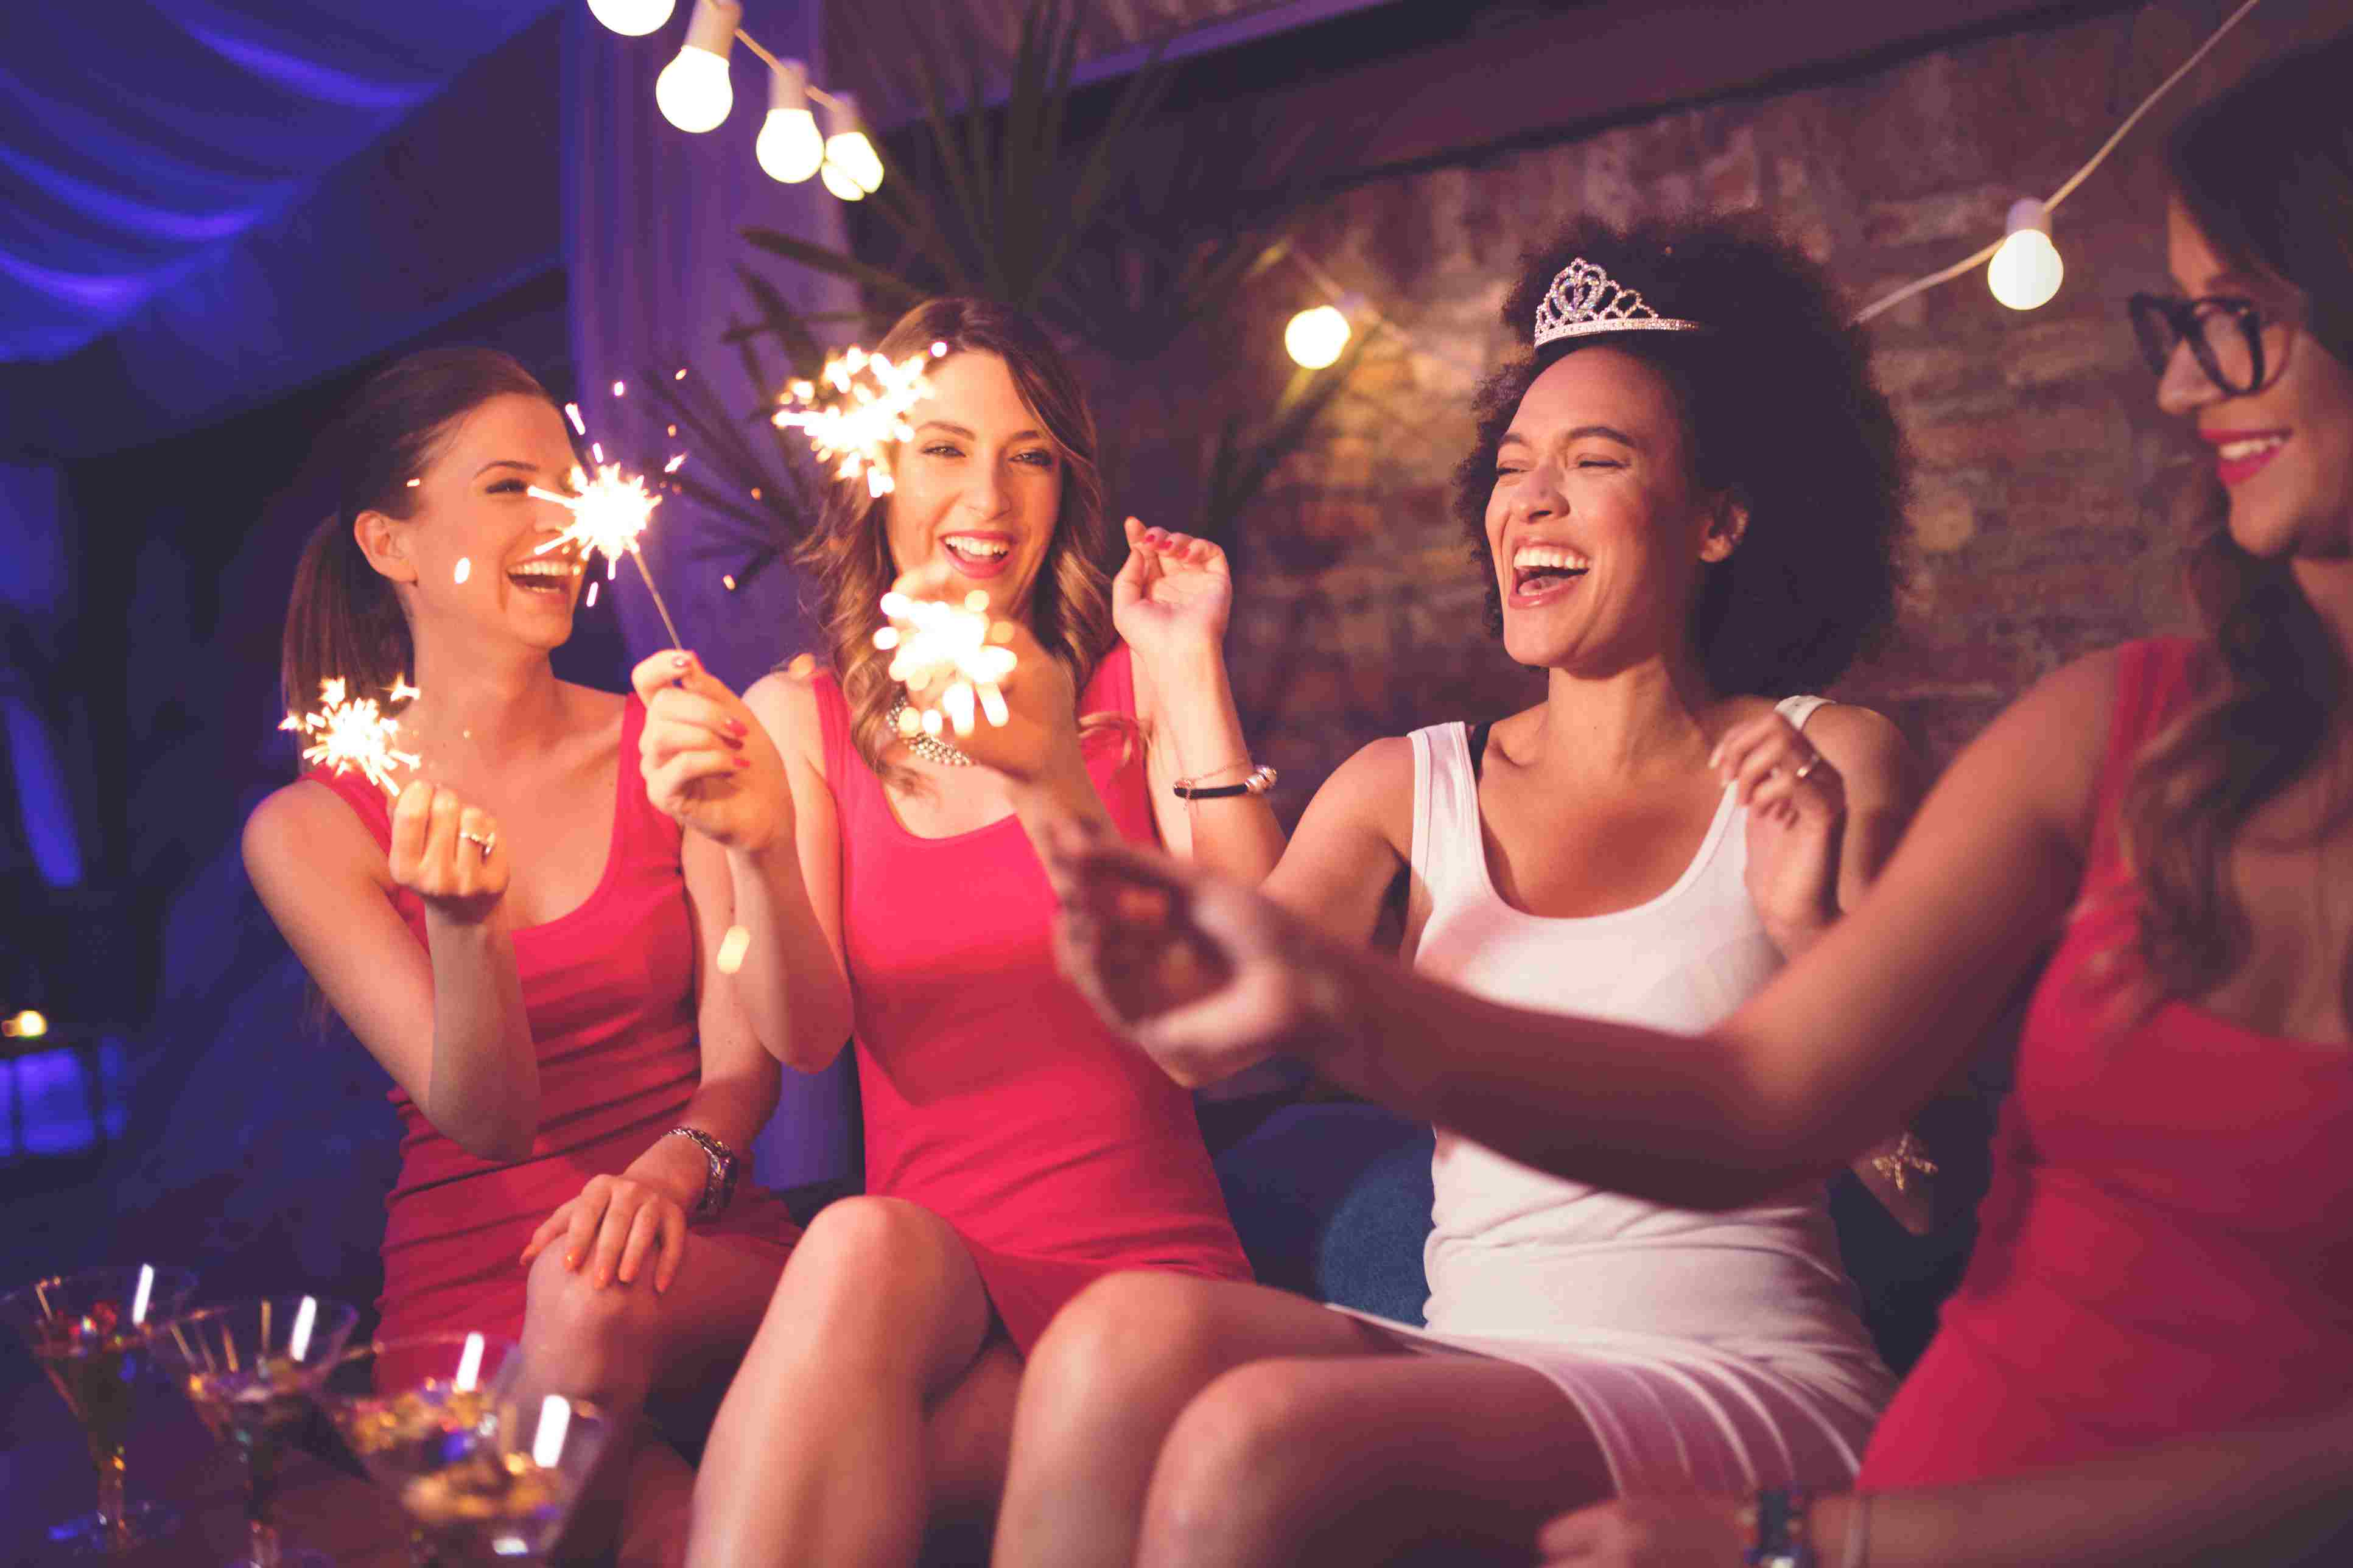 Women at a bachelorette party hold sparklers